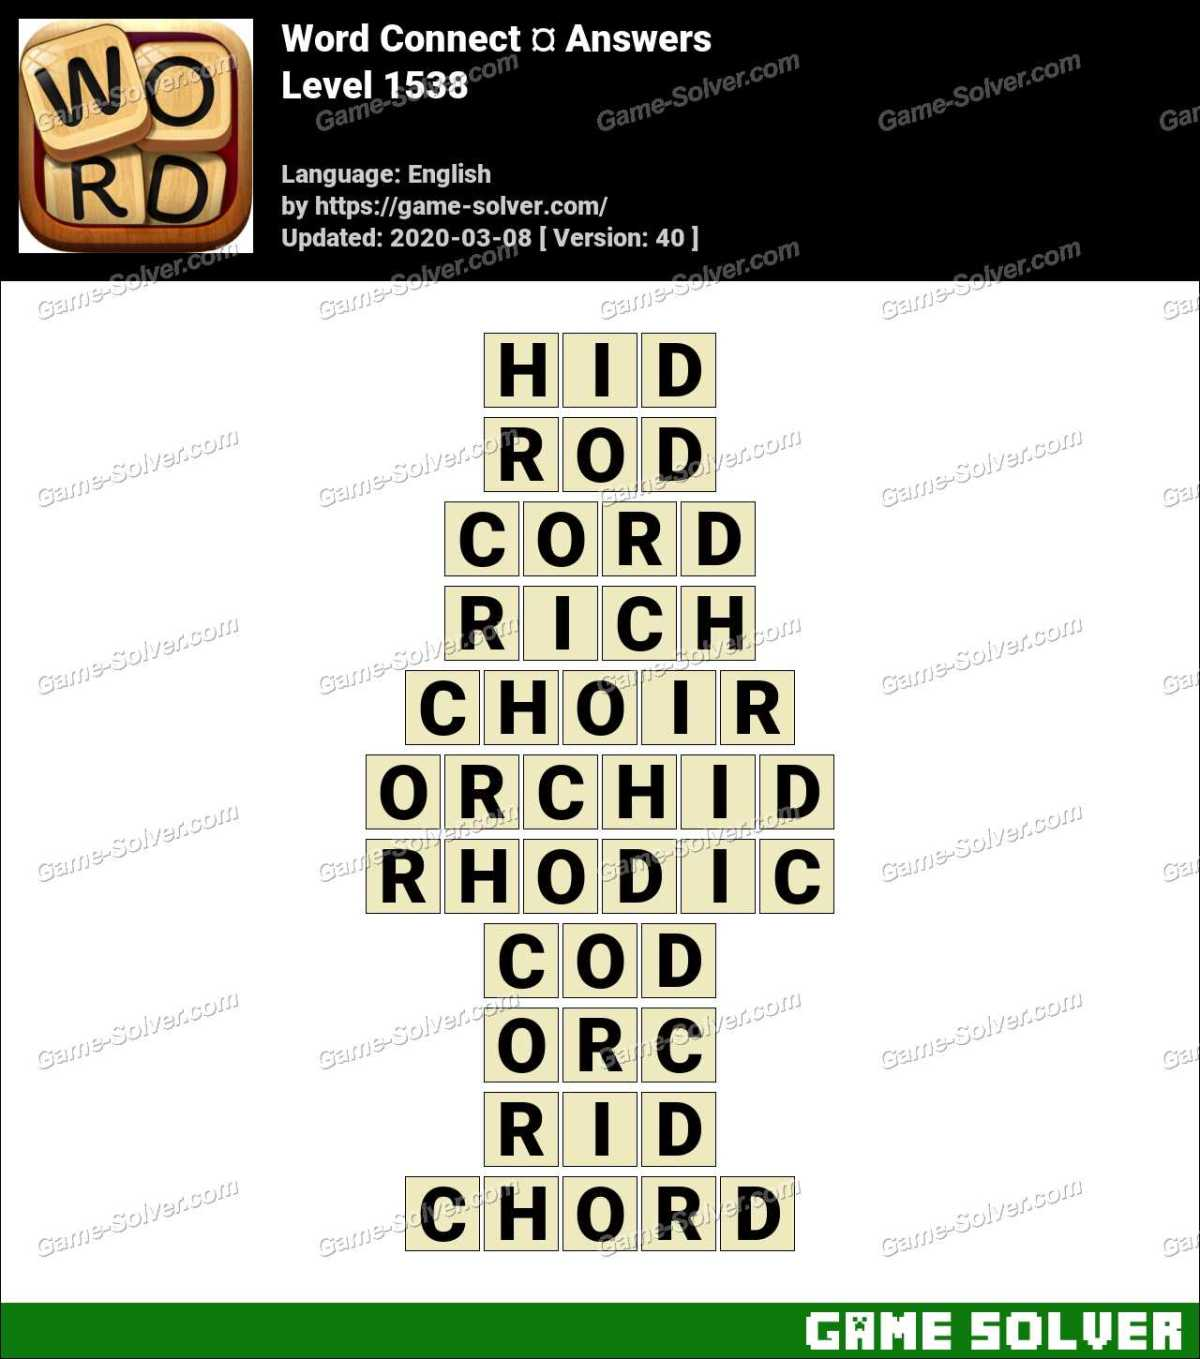 Word Connect Level 1538 Answers